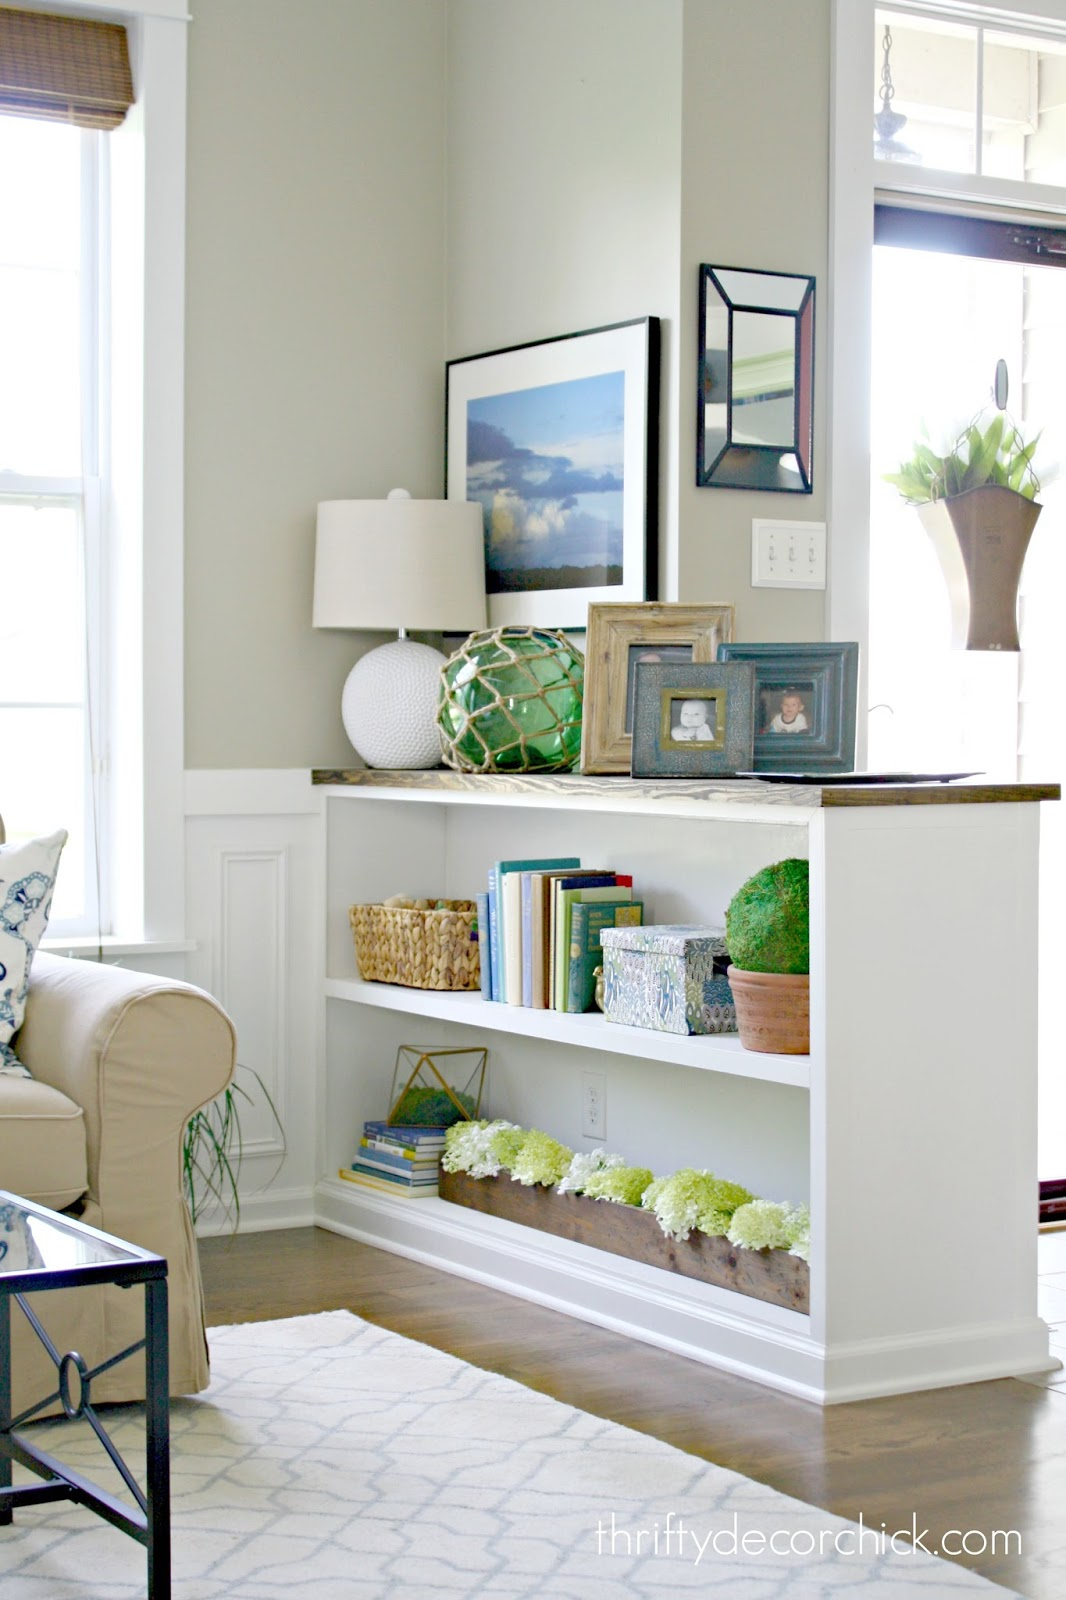 Finished Half Wall Bookcase! From Thrifty Decor Chick